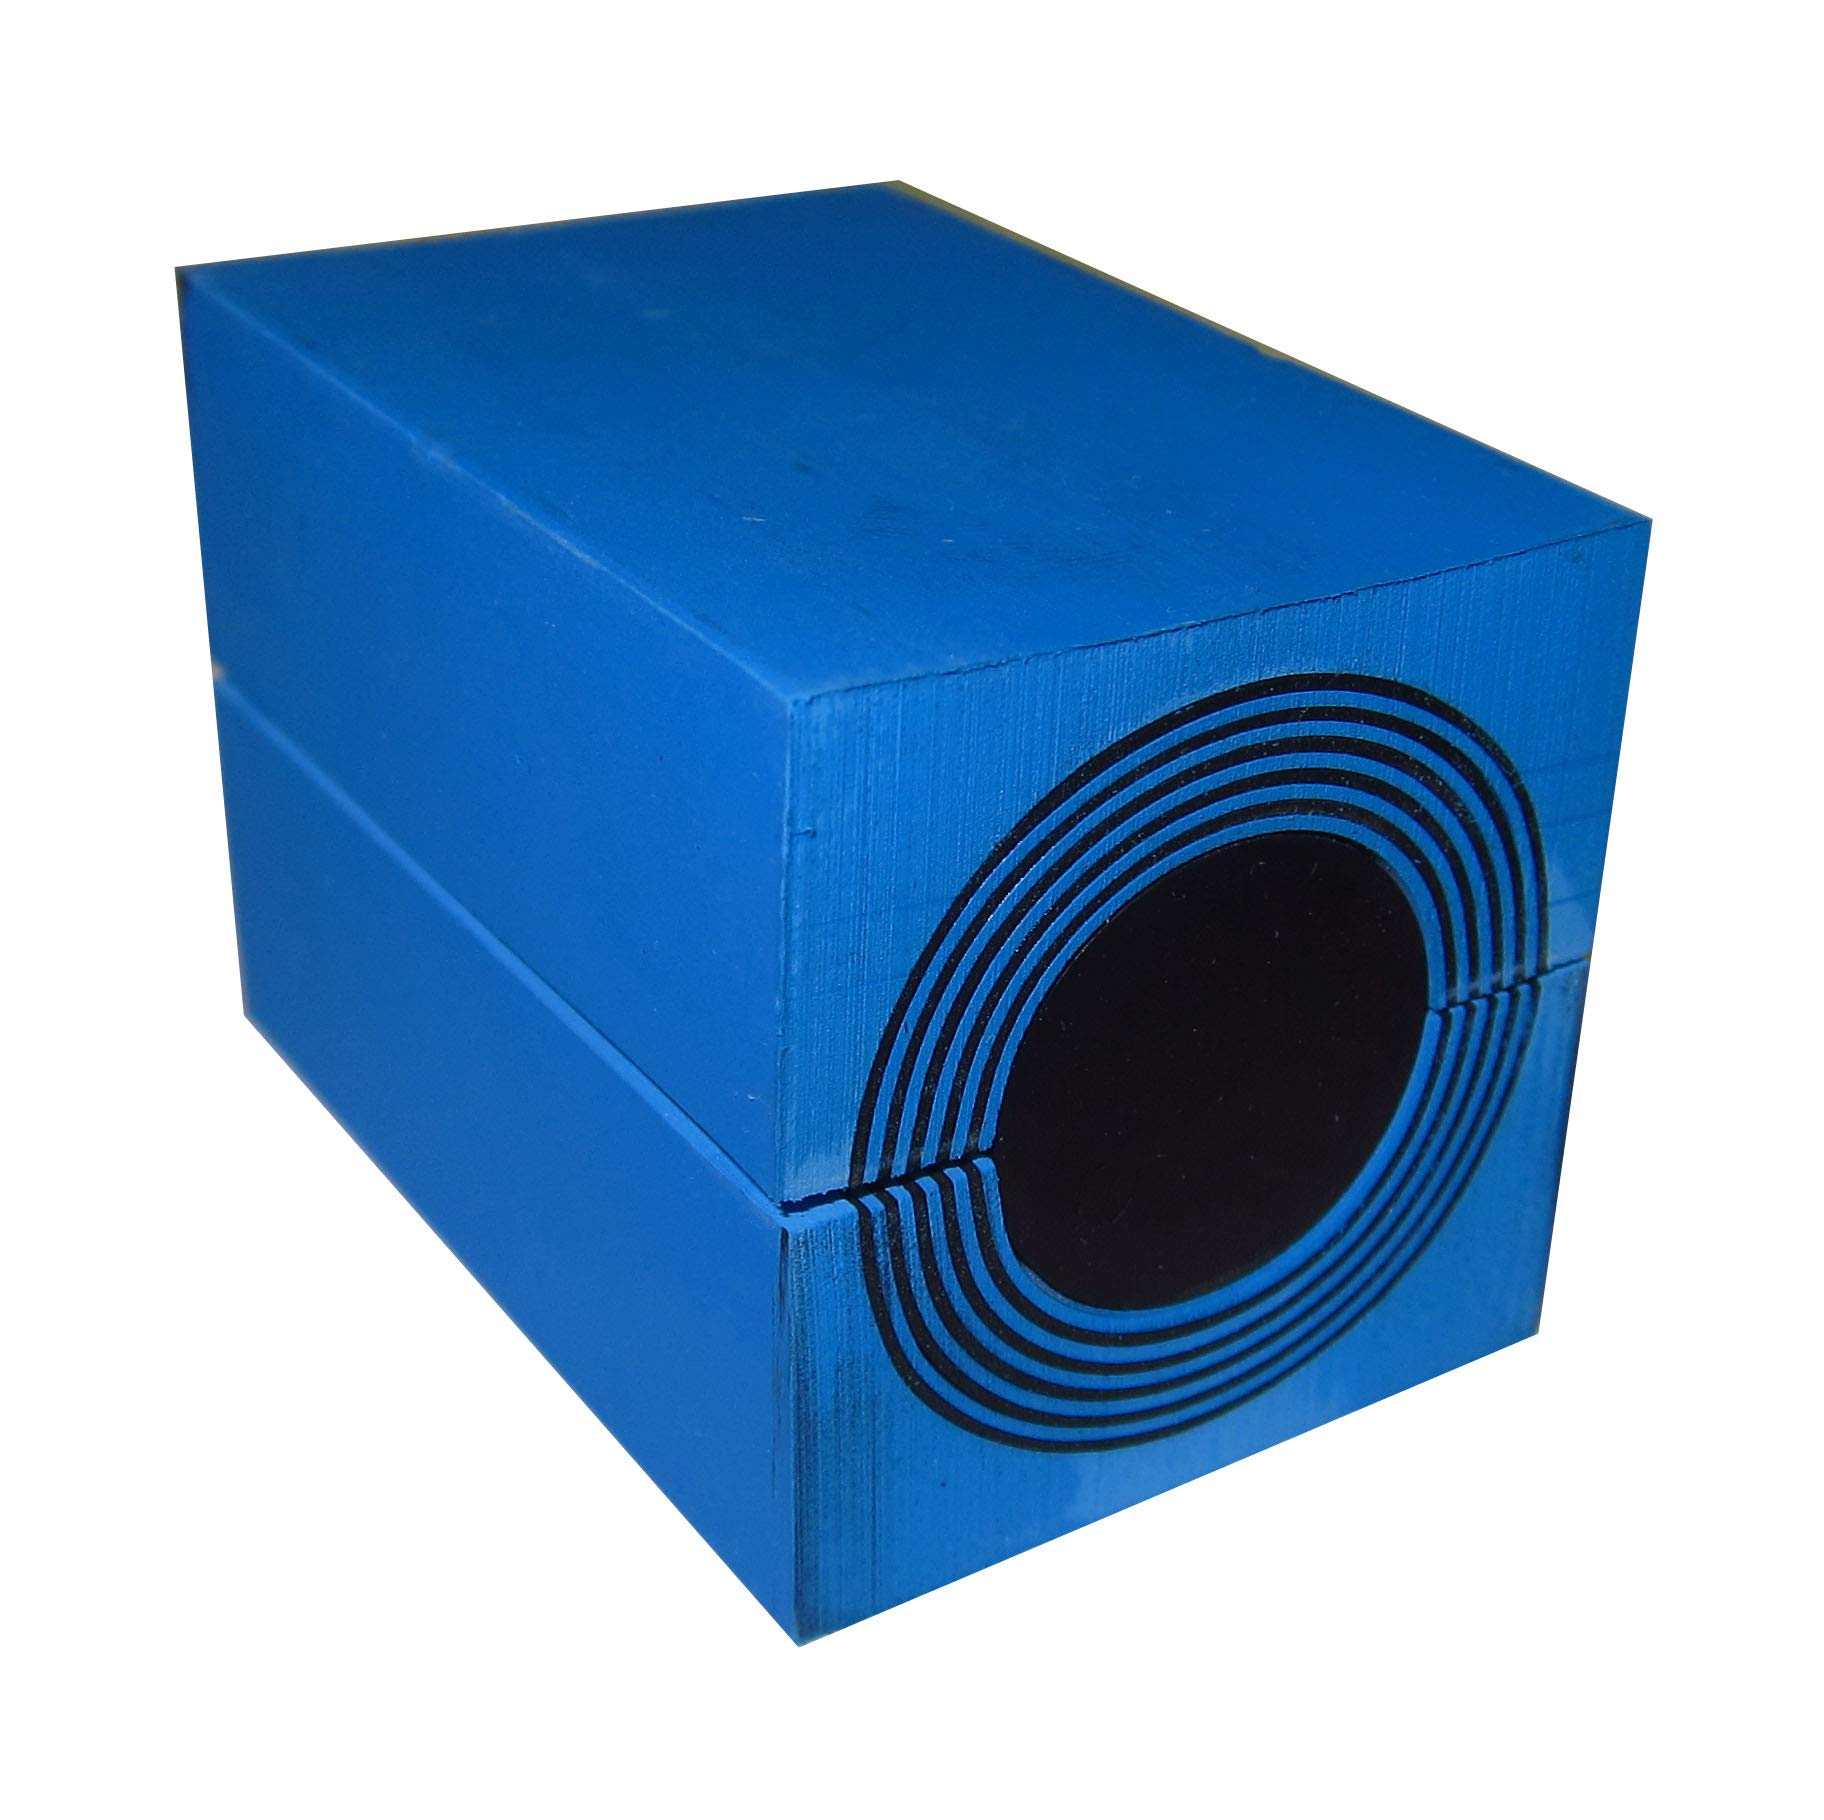 ROXTEC RM00100401000 RM 40, 40 X 40 X 60X MM, with MULTIDIAMETER, (Each), Sealing Module, 2.362 INCH DEEP, for ONE Cable OR Pipe / 21.5-34.5 MM